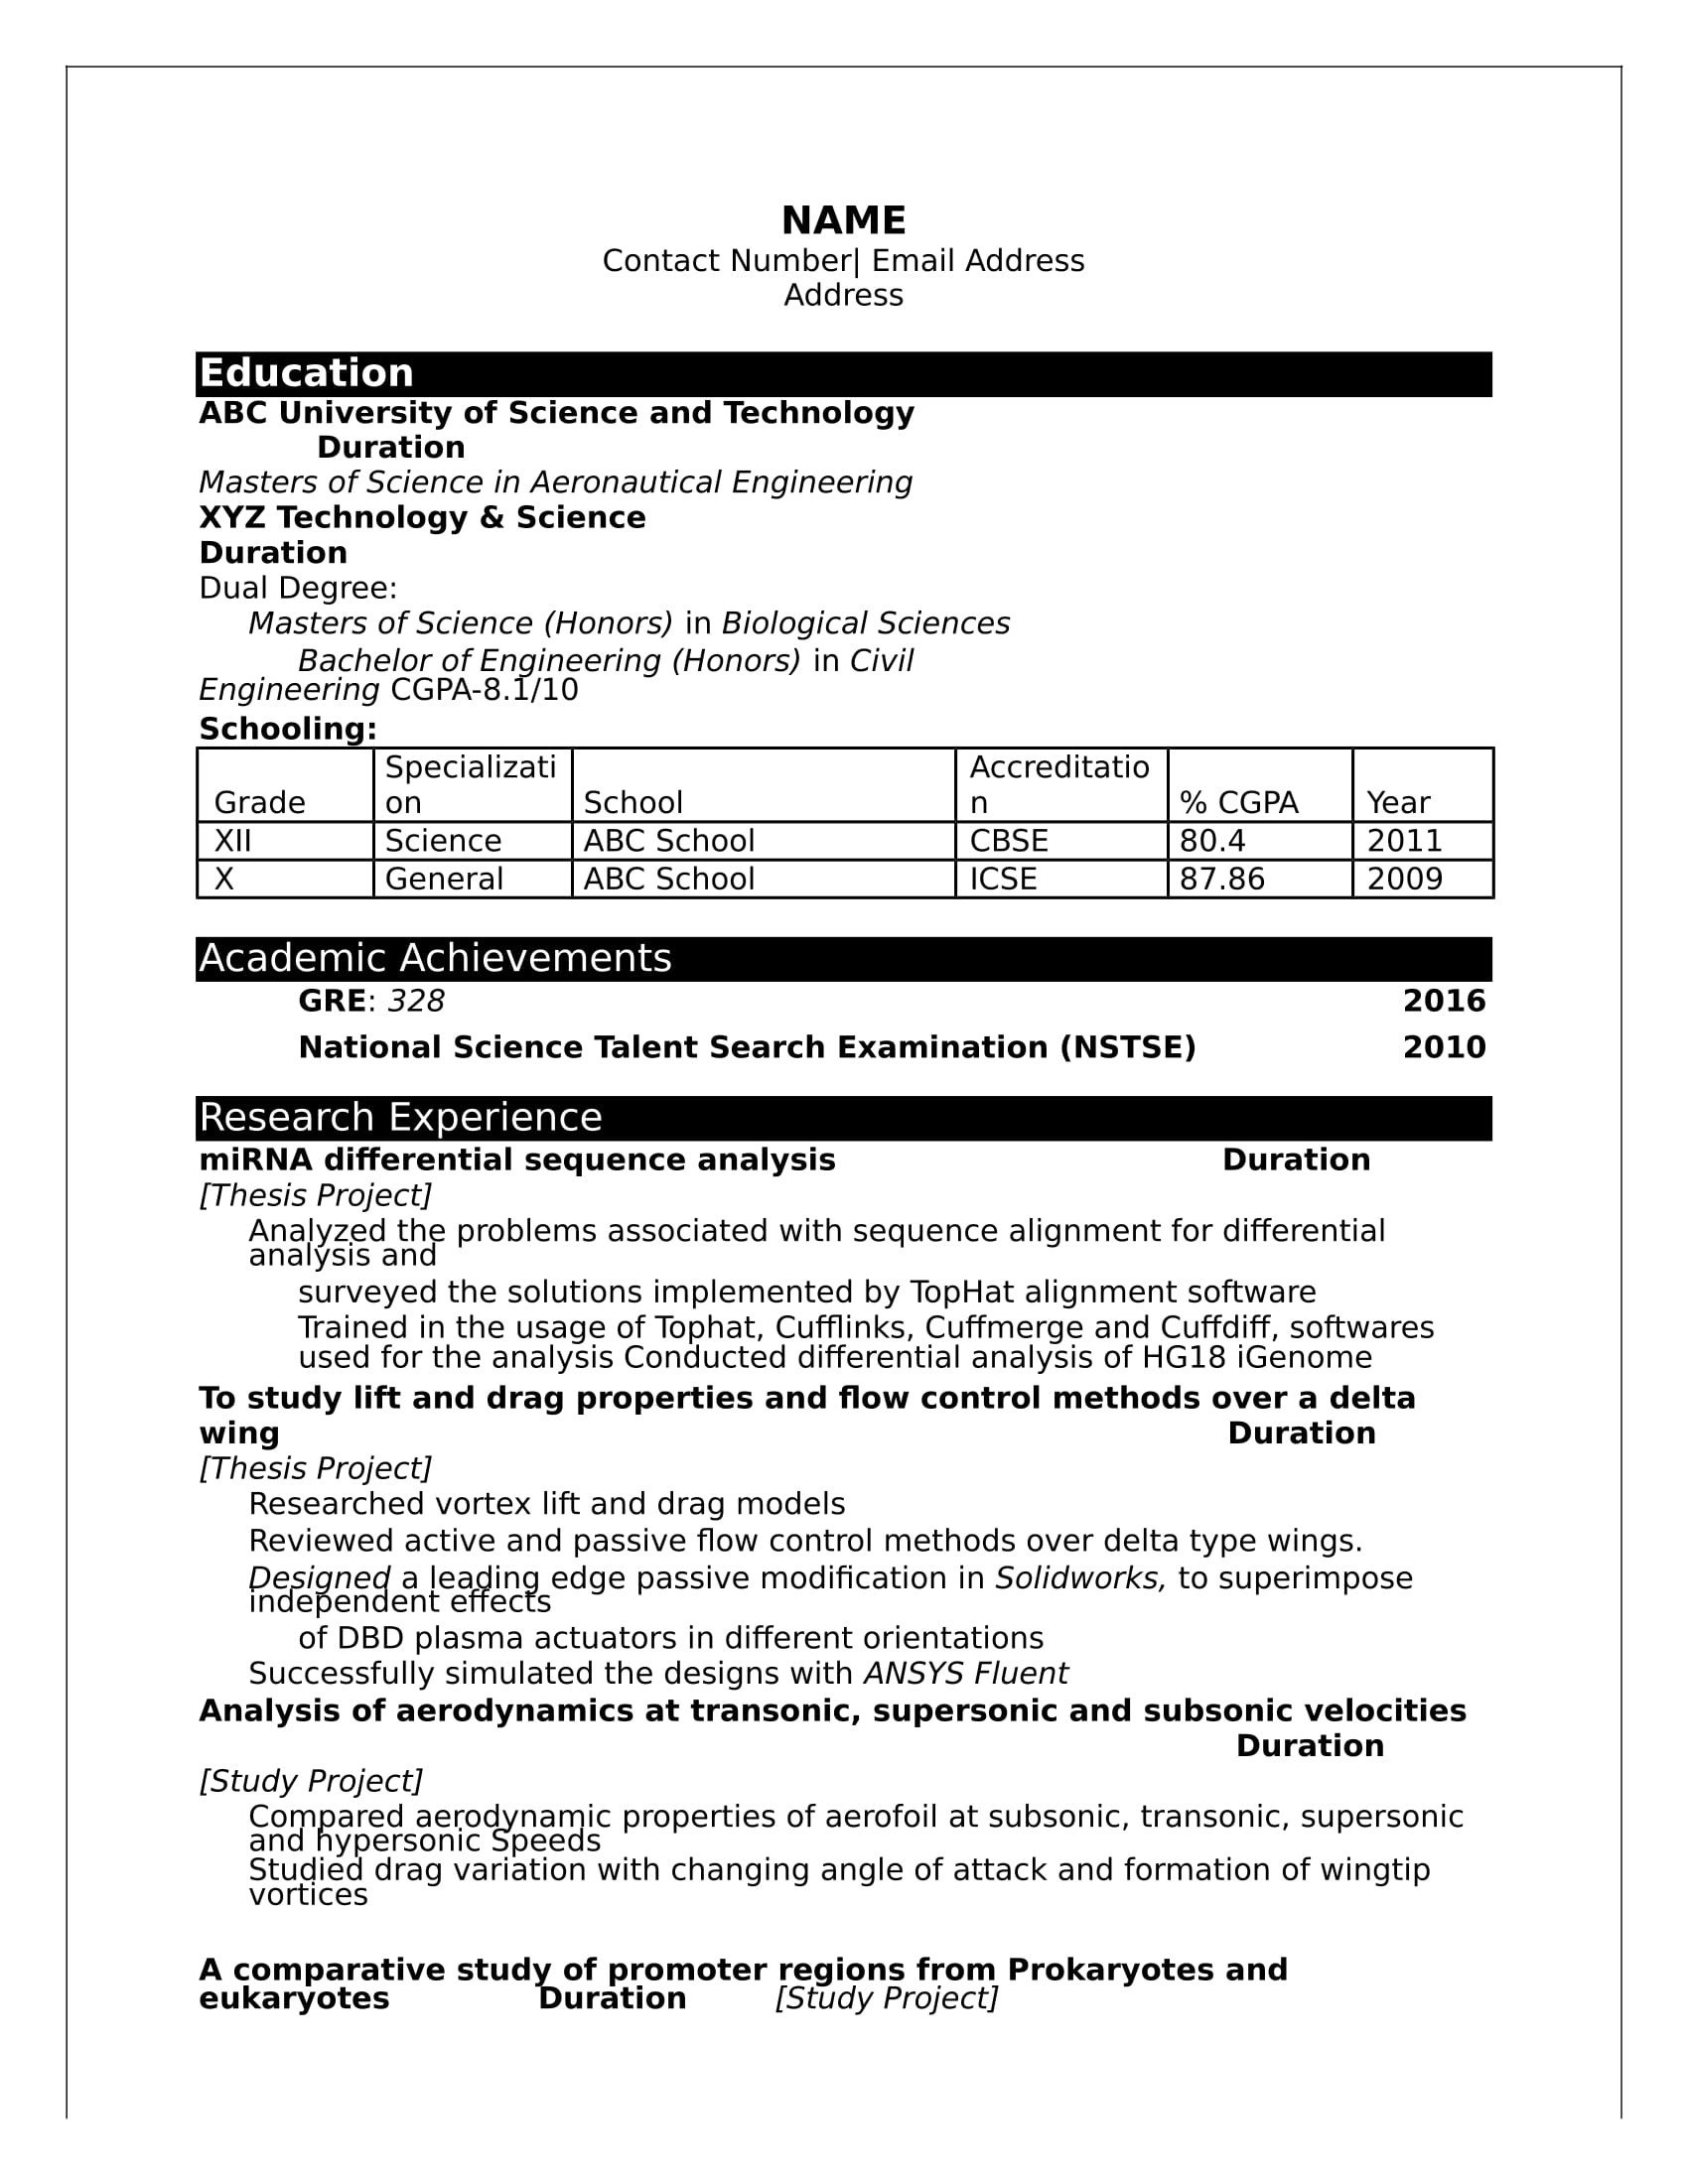 Resume Samples for Freshers 32 Resume Templates for Freshers Download Free Word format